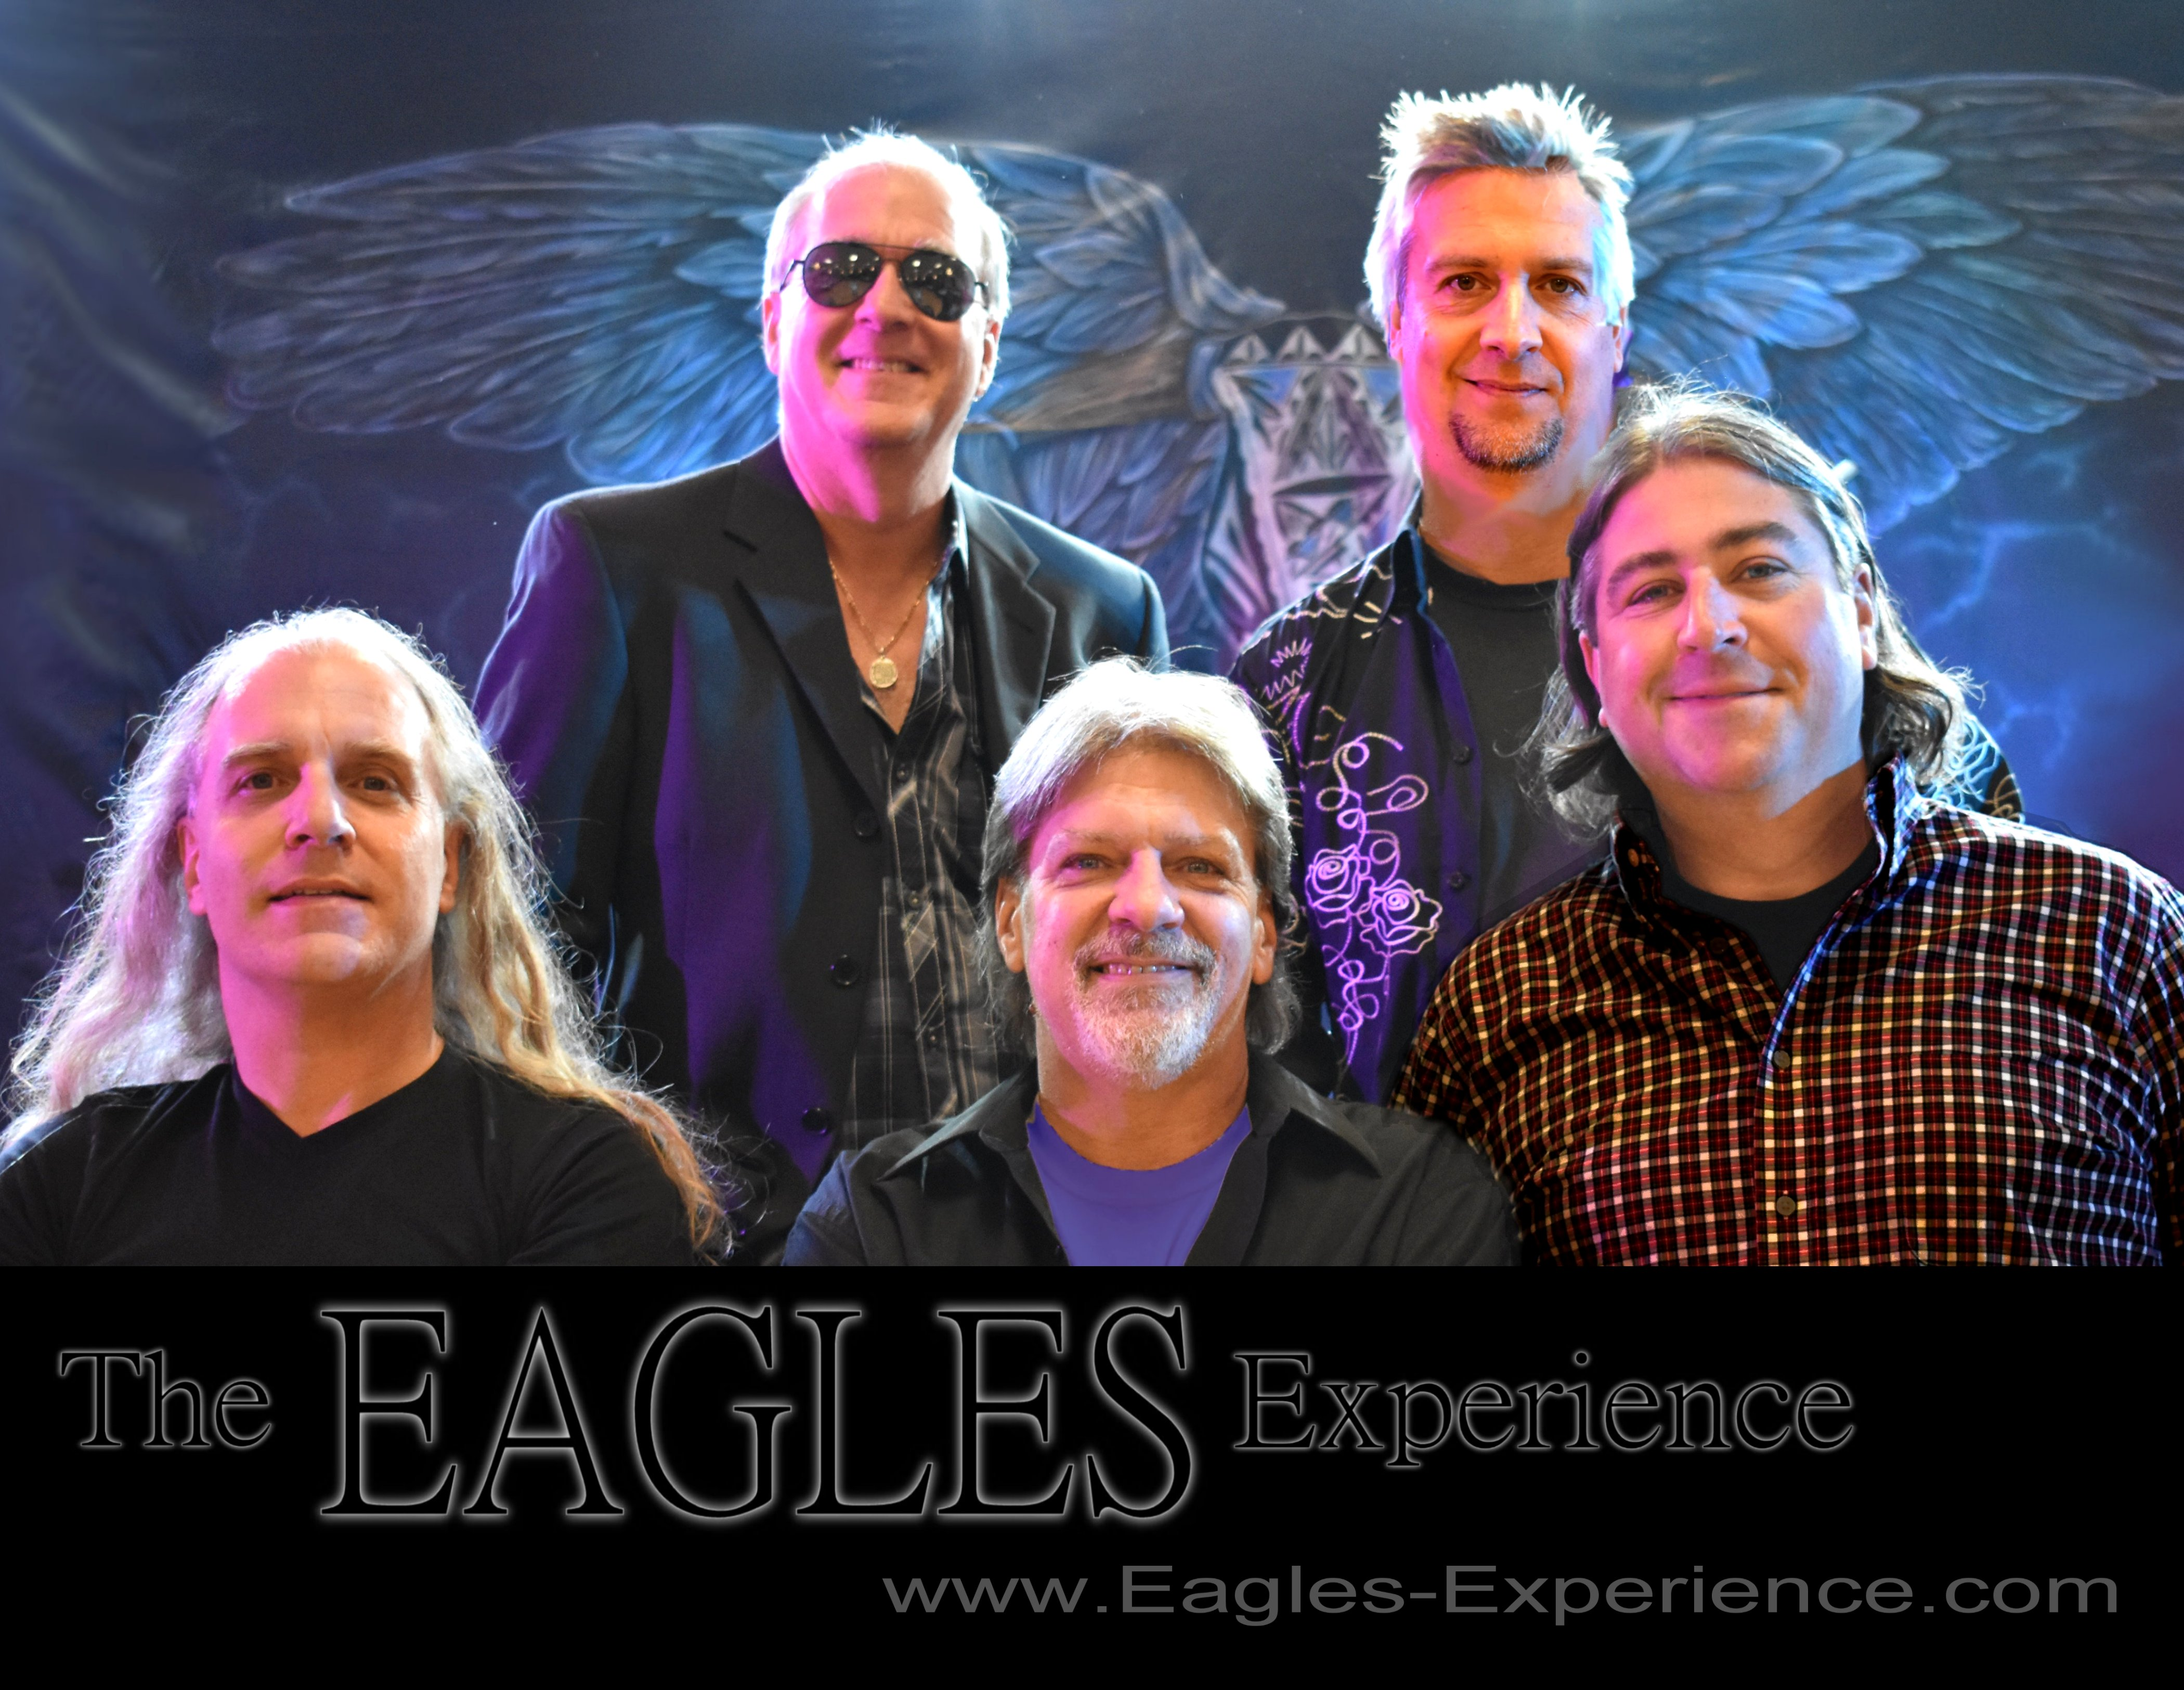 Eagles Experience